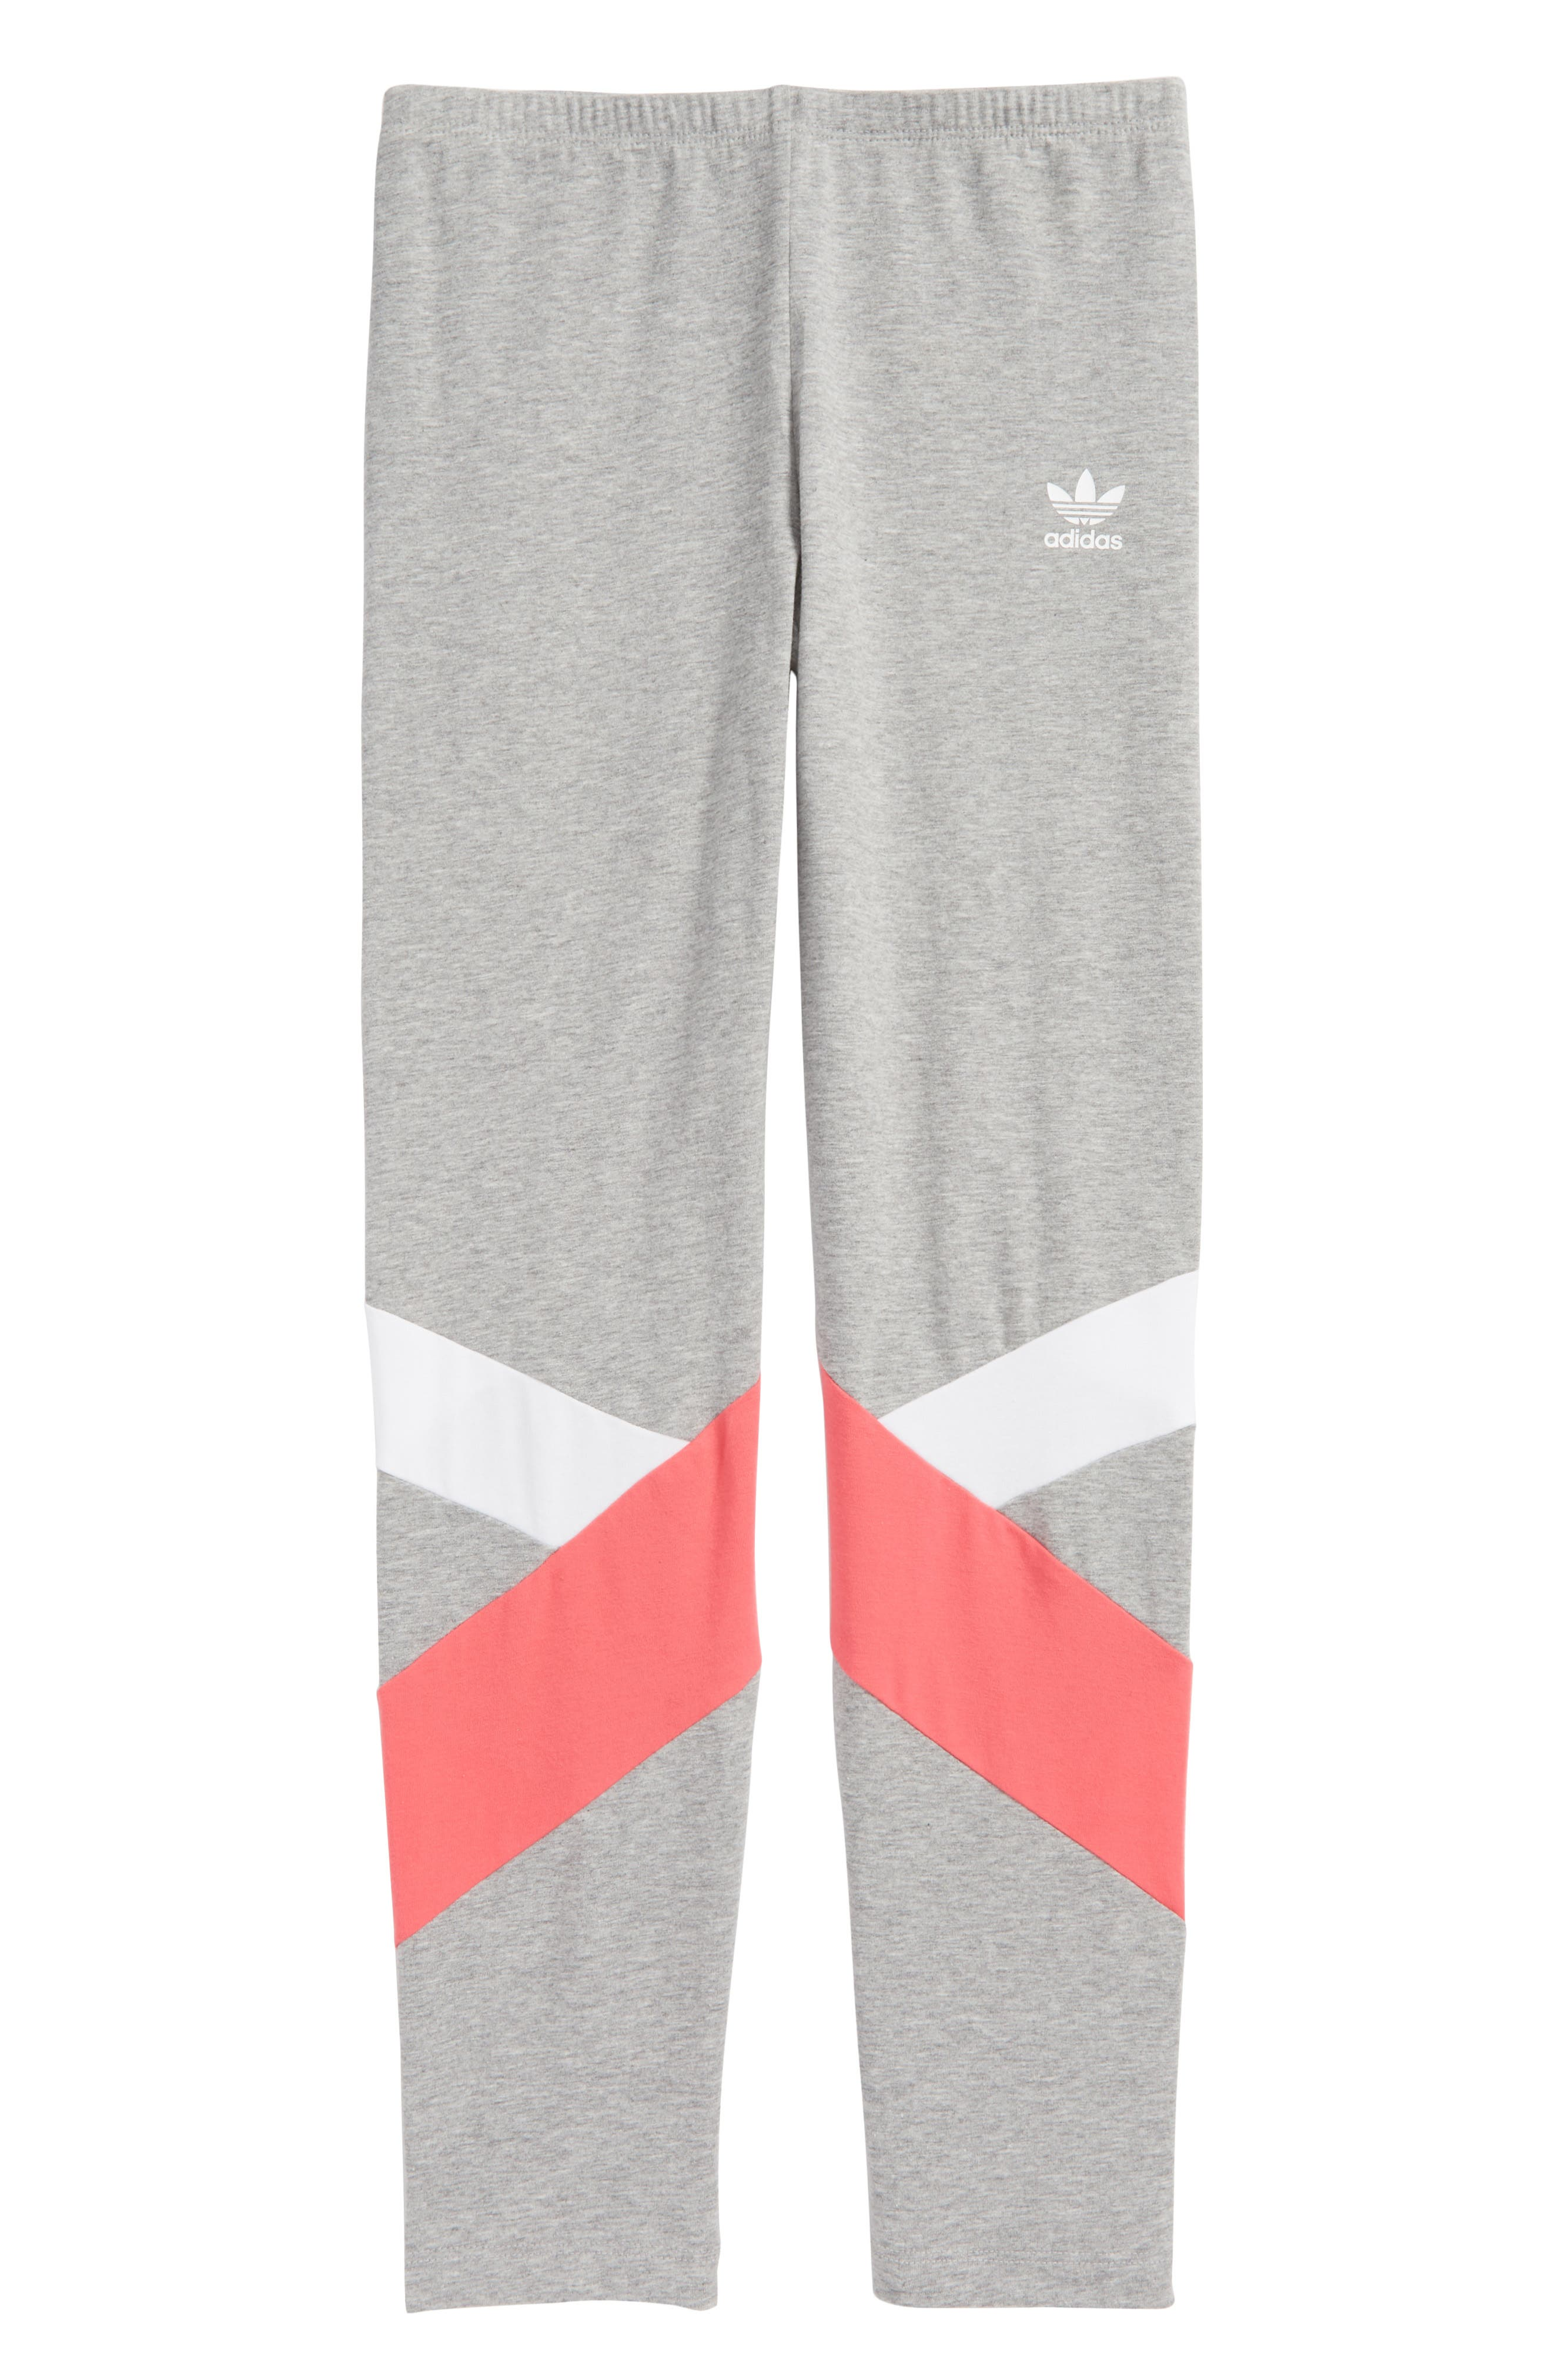 Alternate Image 1 Selected - adidas J Leggings (Big Girls)